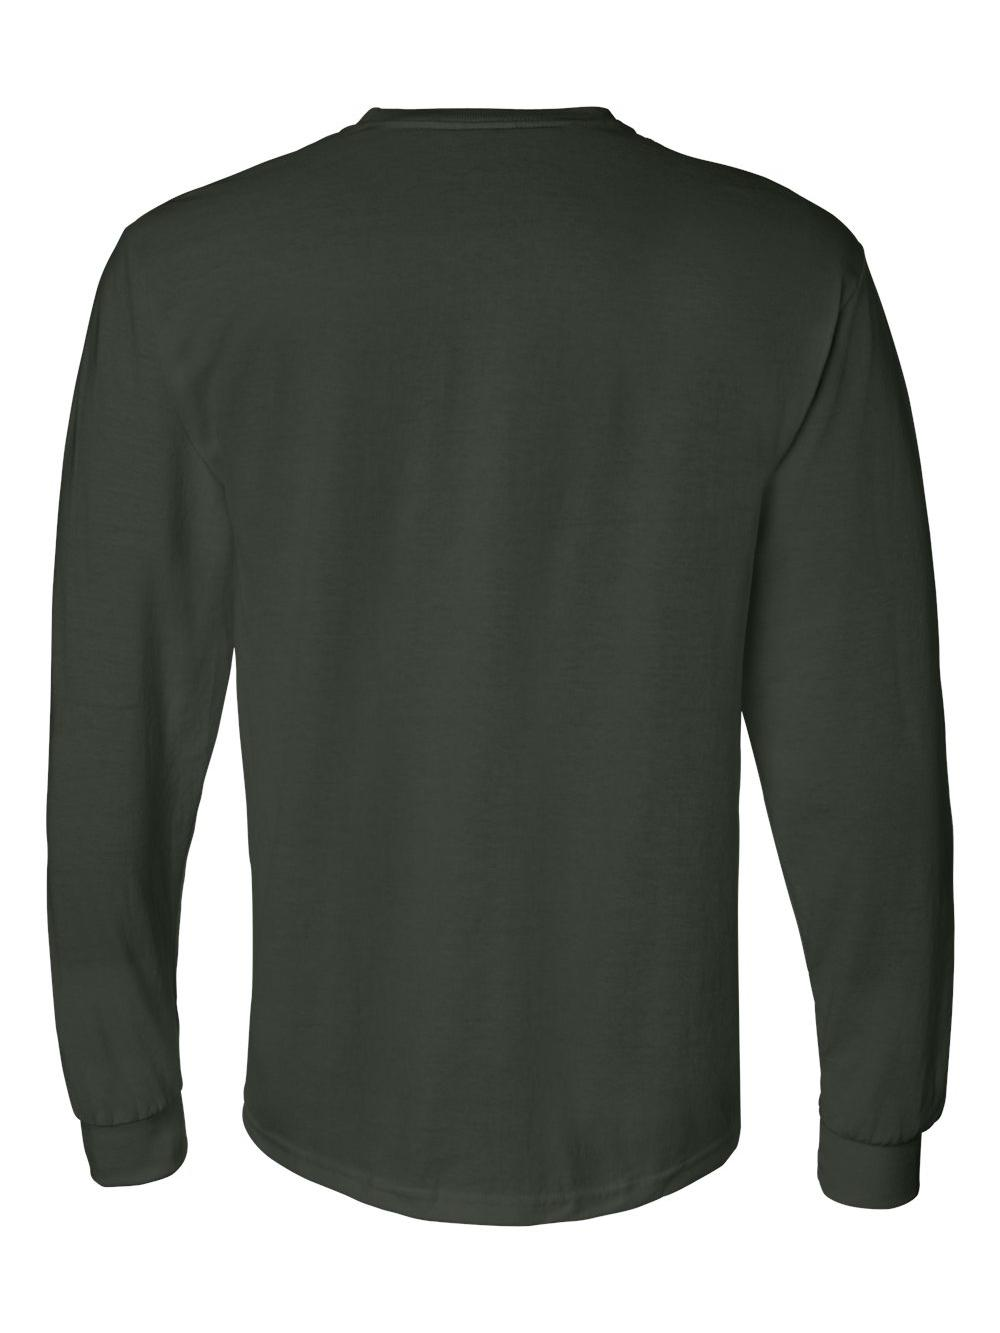 Gildan-DryBlend-50-50-Long-Sleeve-T-Shirt-8400 thumbnail 16